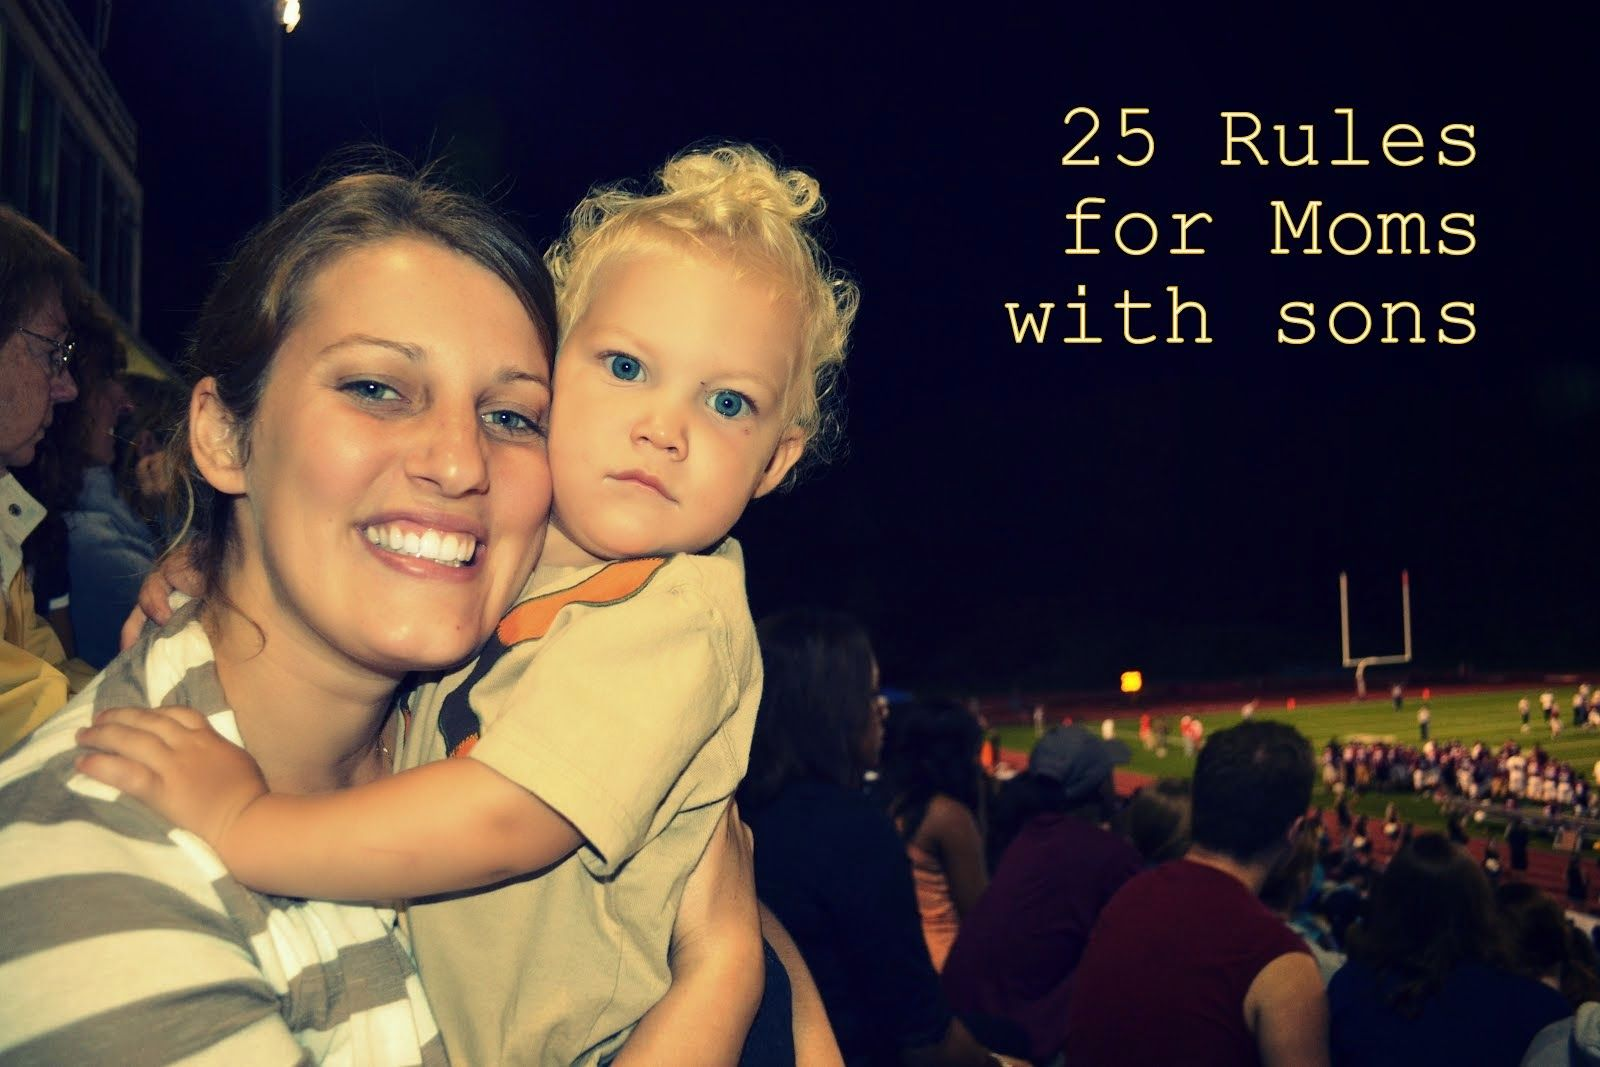 Rules For Moms With Sons Love This